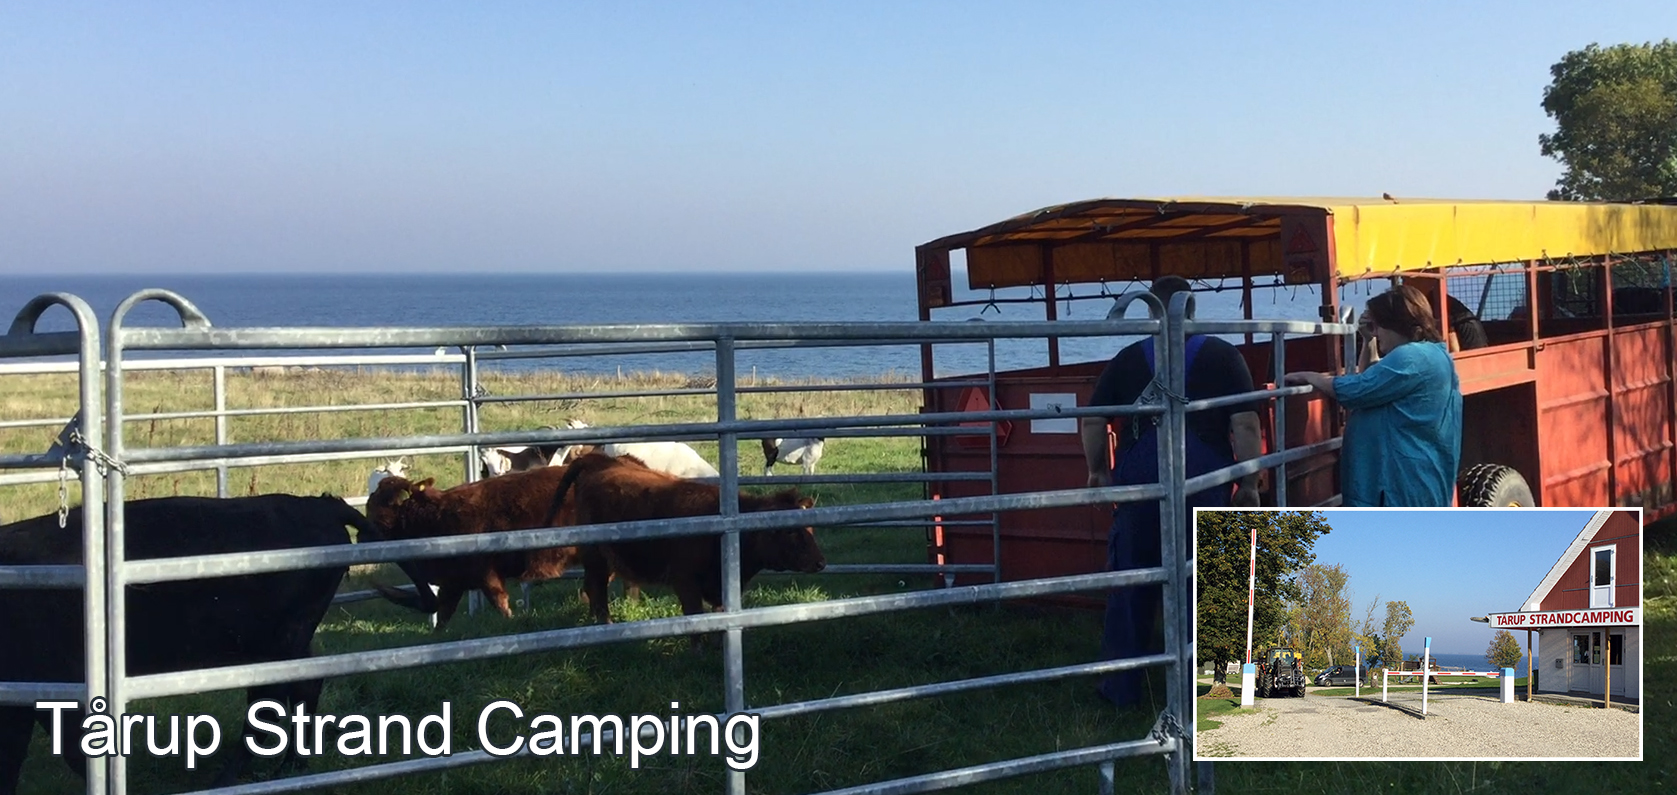 October 14, 2018 Today the cows traveled home from Tårup Strand Camping for the winter ...